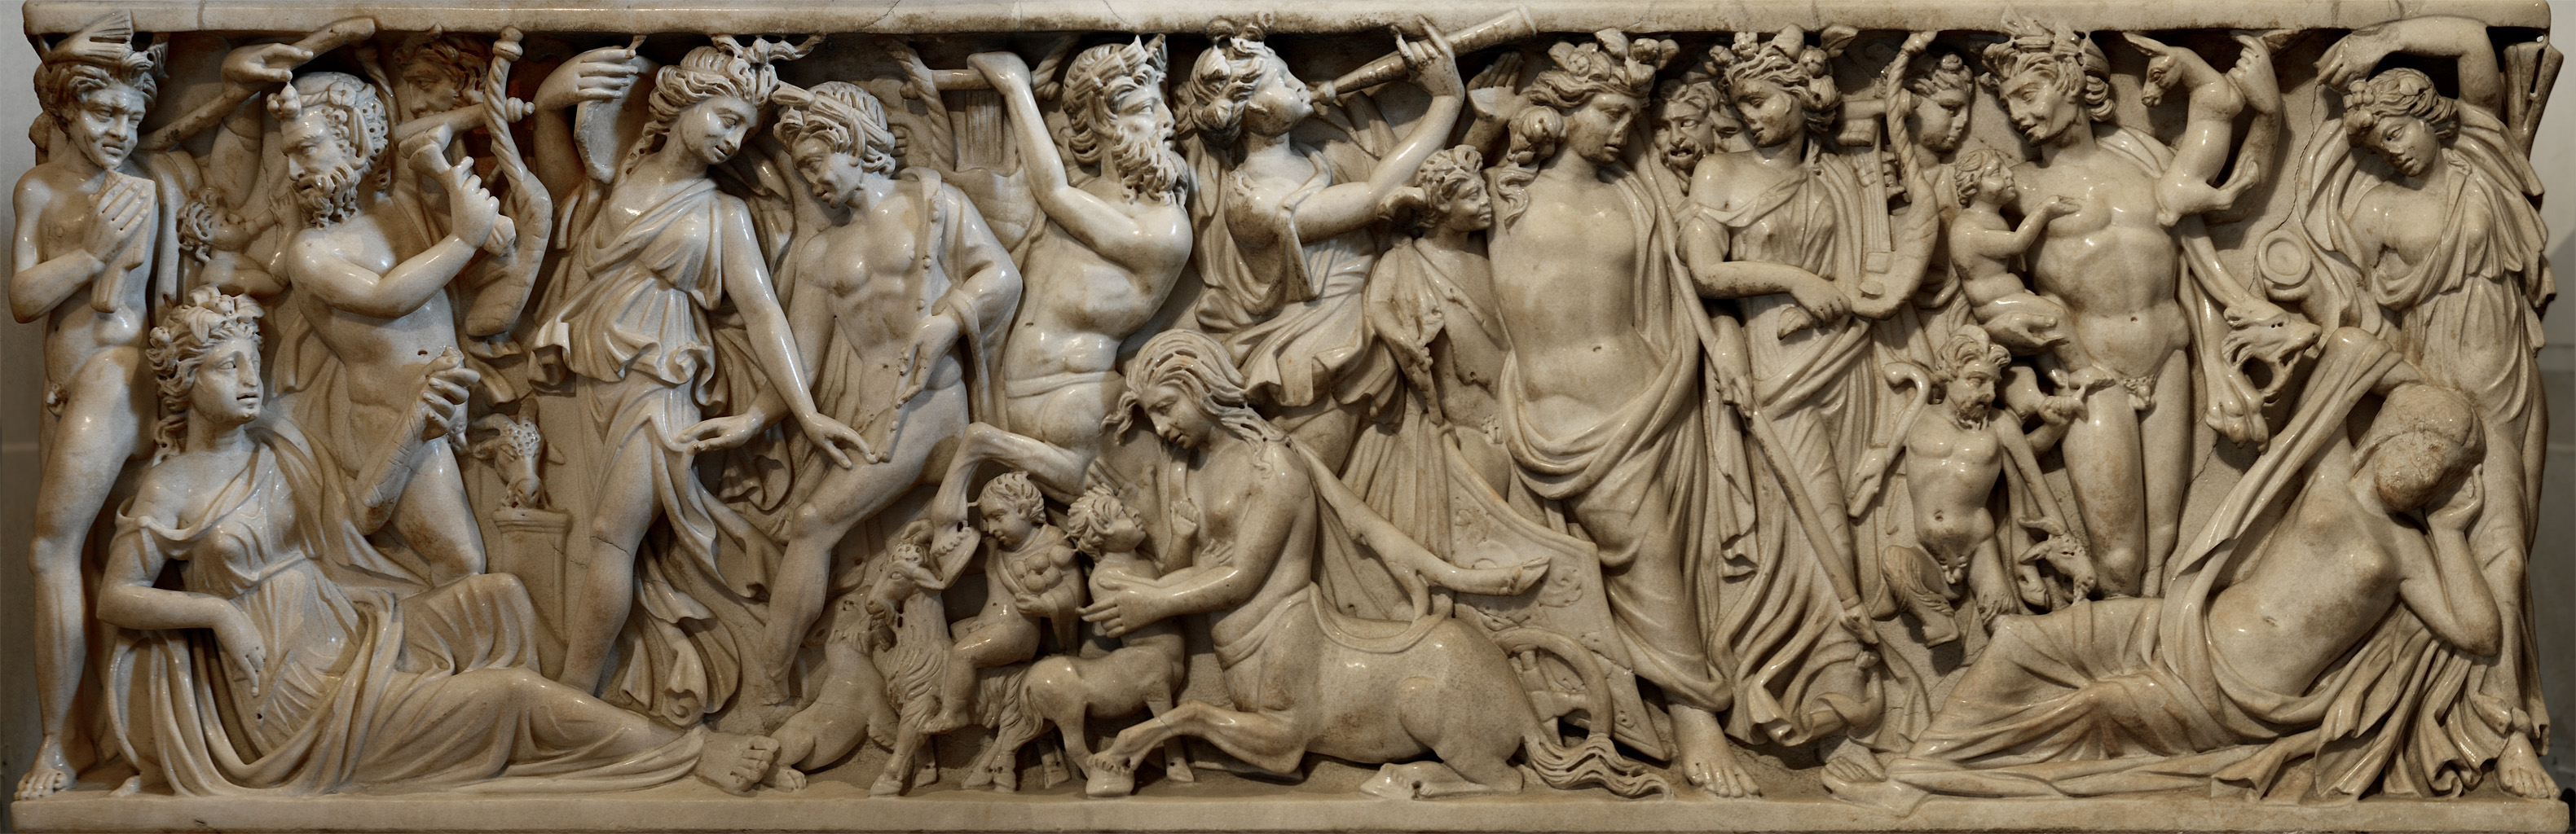 Sarcophagus with a myth of Dionysus and Ariadne (front panel). Marble. Ca. 235 CE. Inv. No. Ma 1346. Paris, Louvre Museum